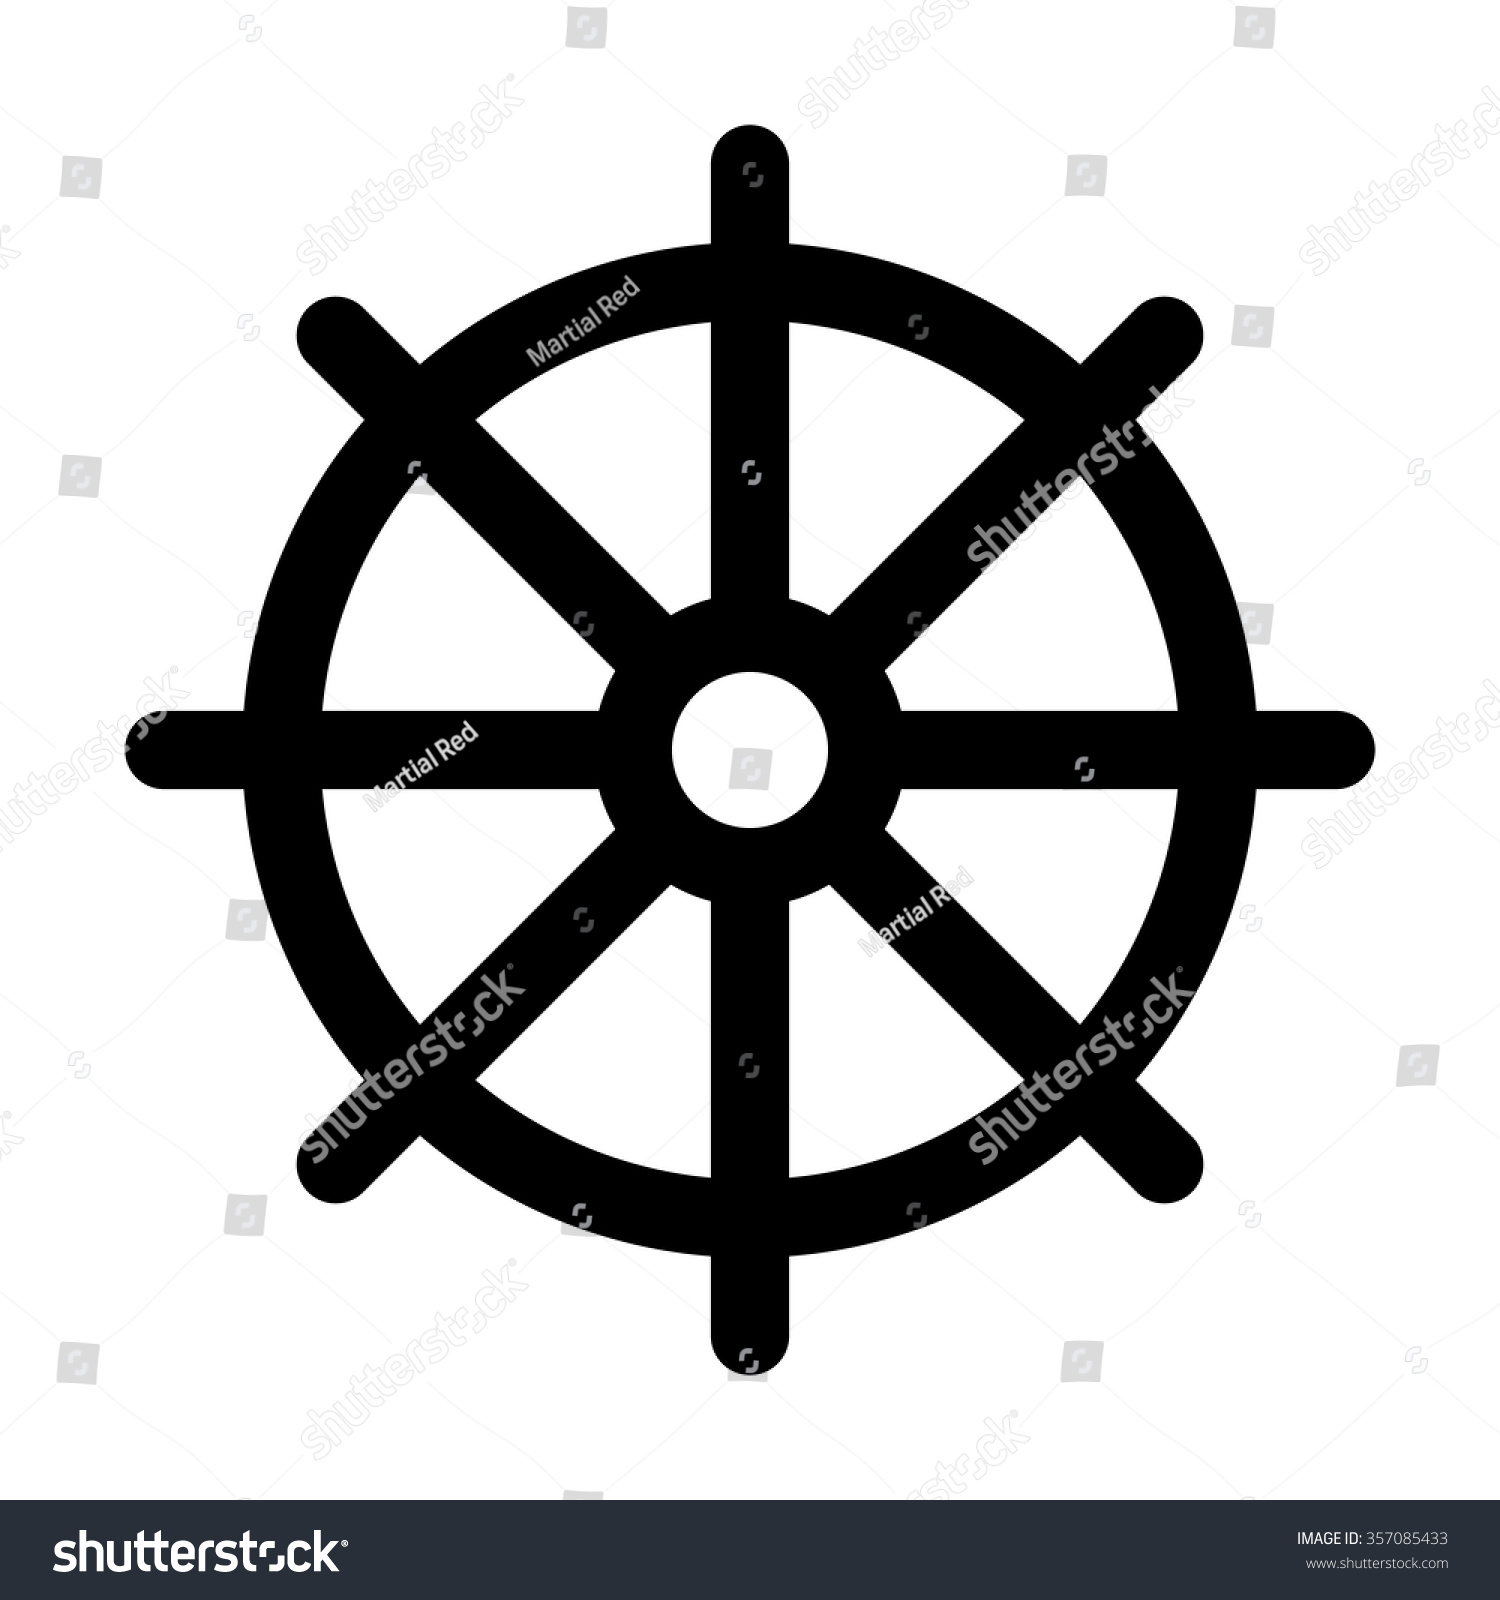 Dharmachakra Wheel Dharma Symbol Buddhism Hinduism Stock Vector ... for Dharmachakra Png  54lyp